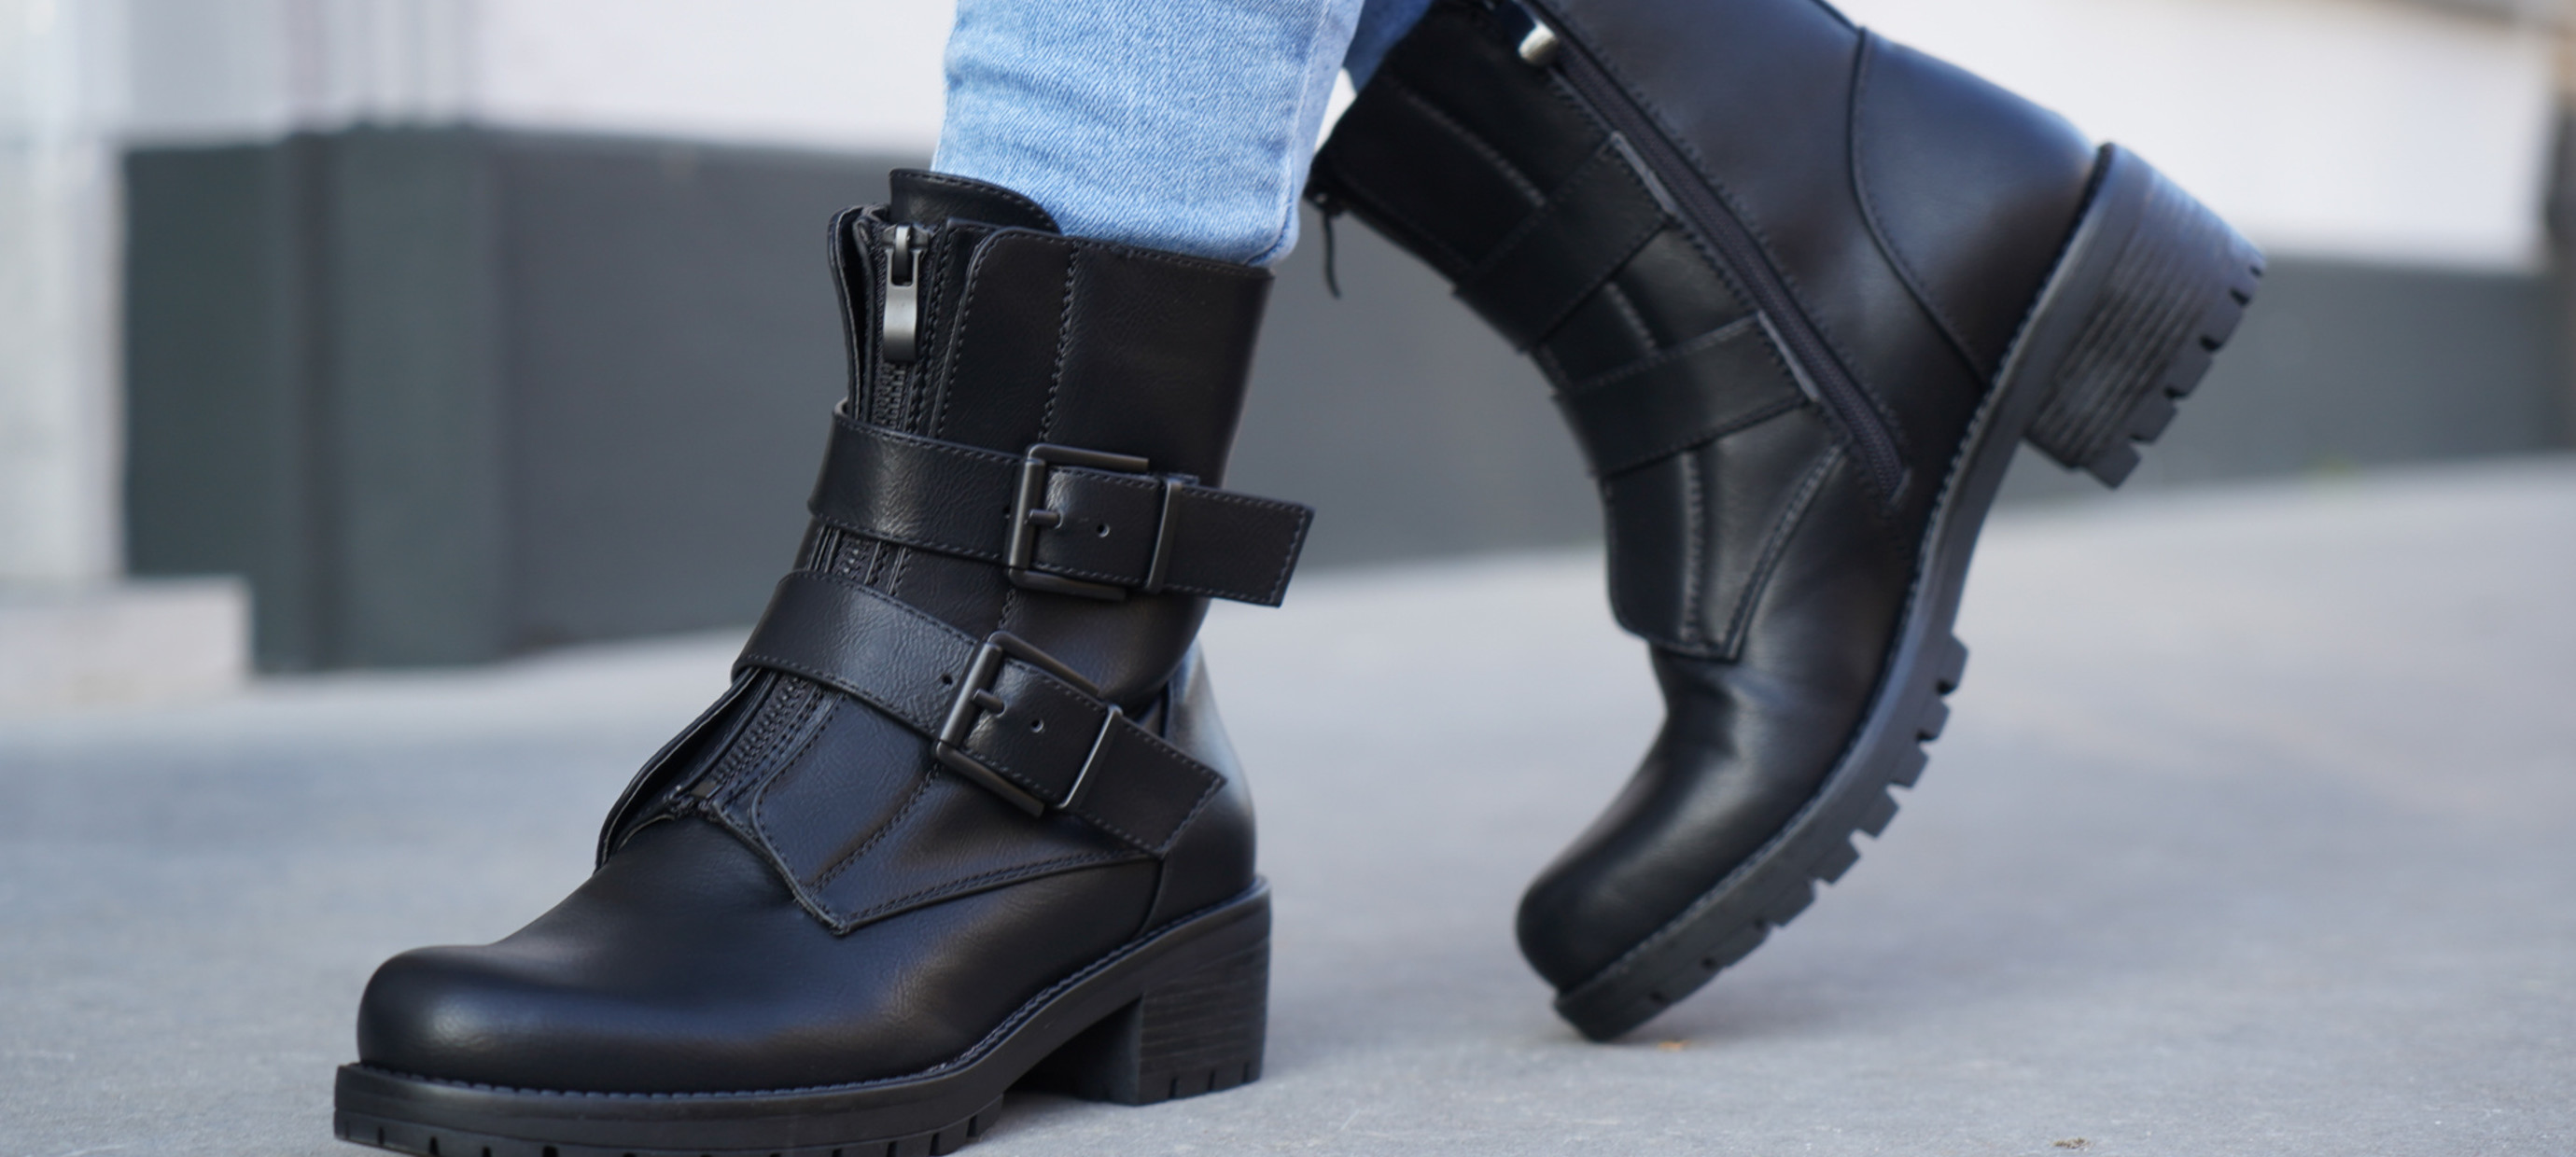 BOOTS TRENDS: We are on a boots vibe!